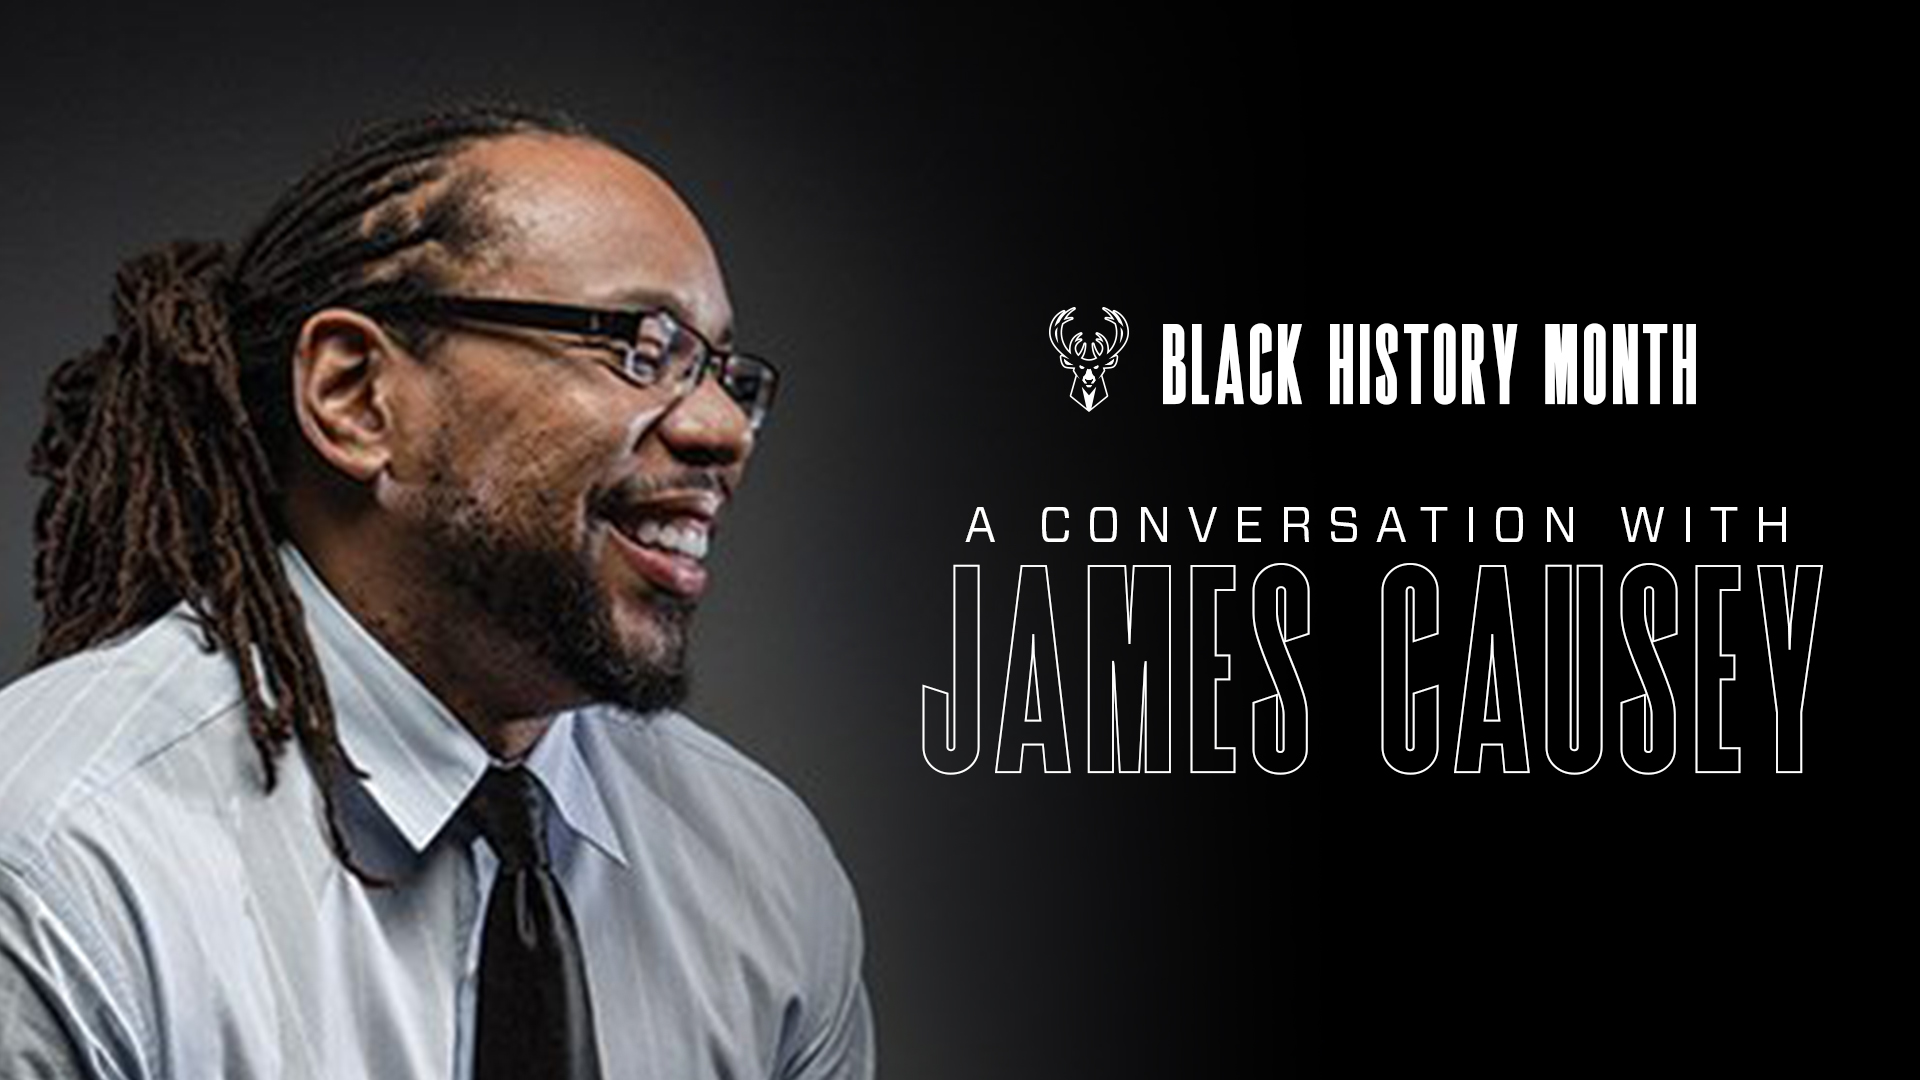 A Conversation With James Causey